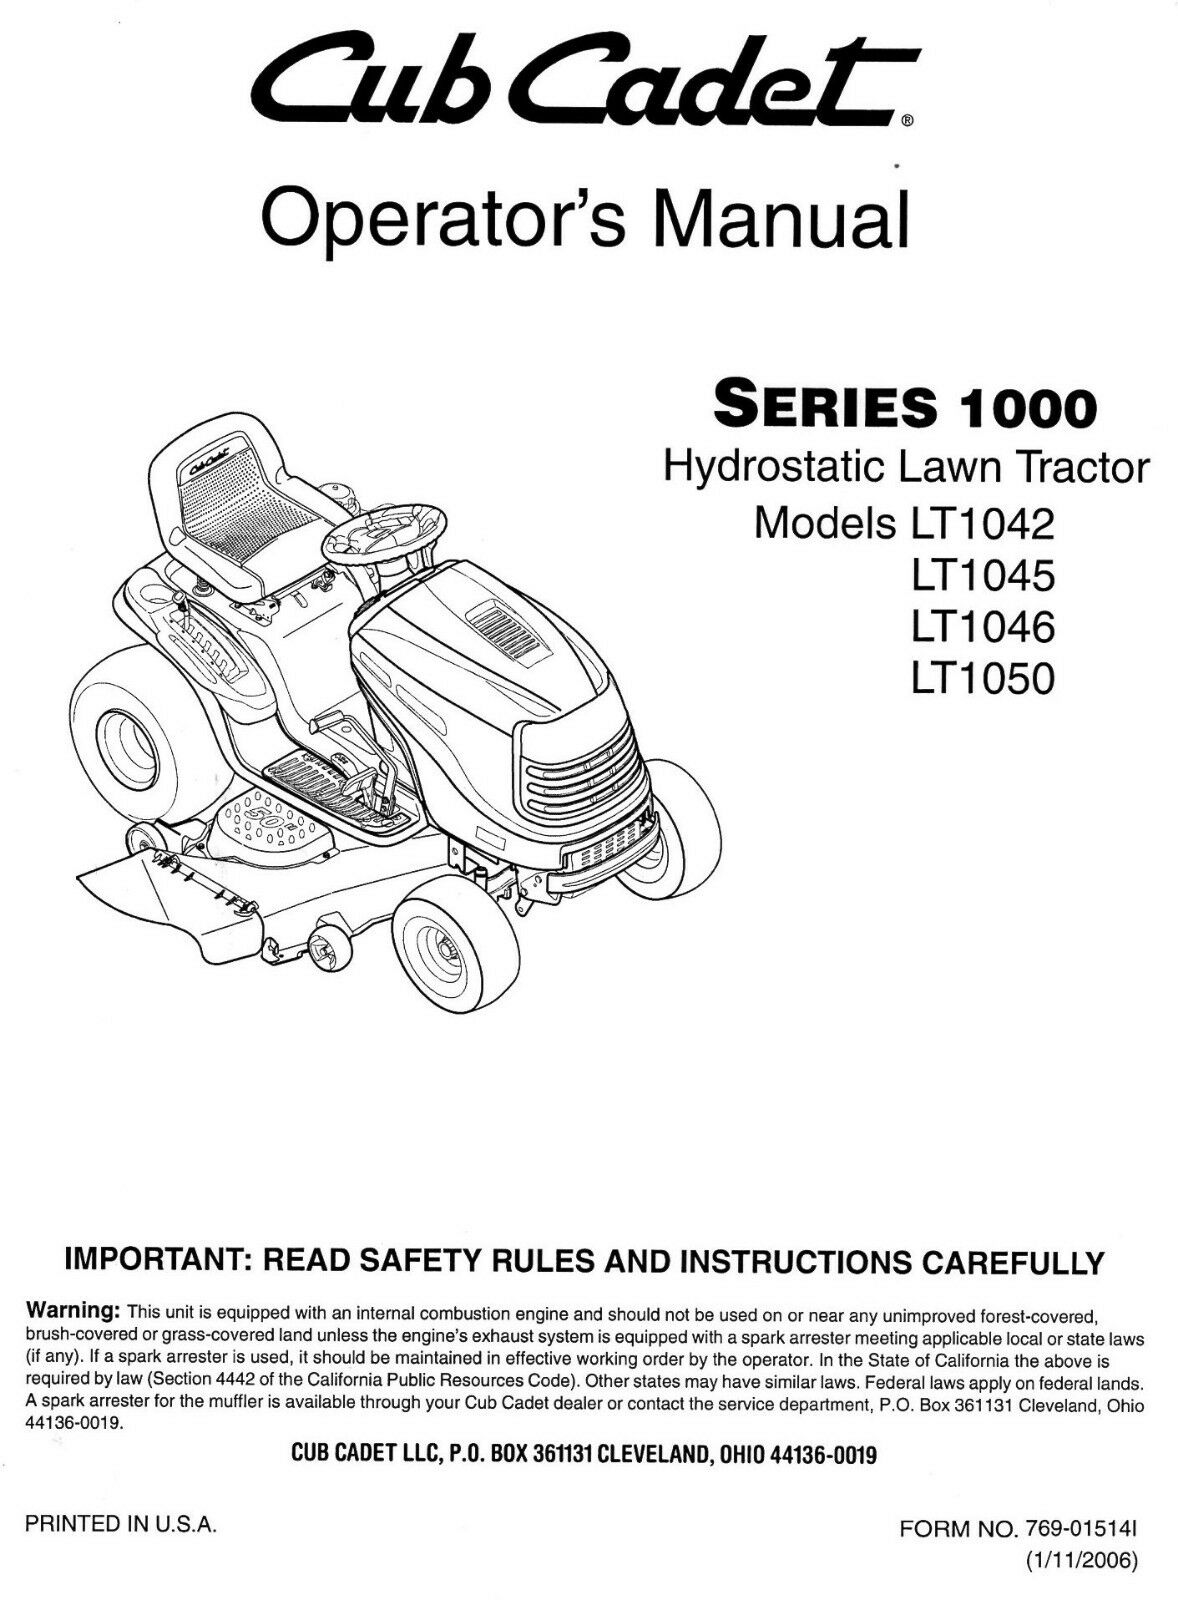 cub cadet model 1050 manual enthusiast wiring diagrams u2022 rh rasalibre co cub cadet 1340 service manual cub cadet 1430 service manual